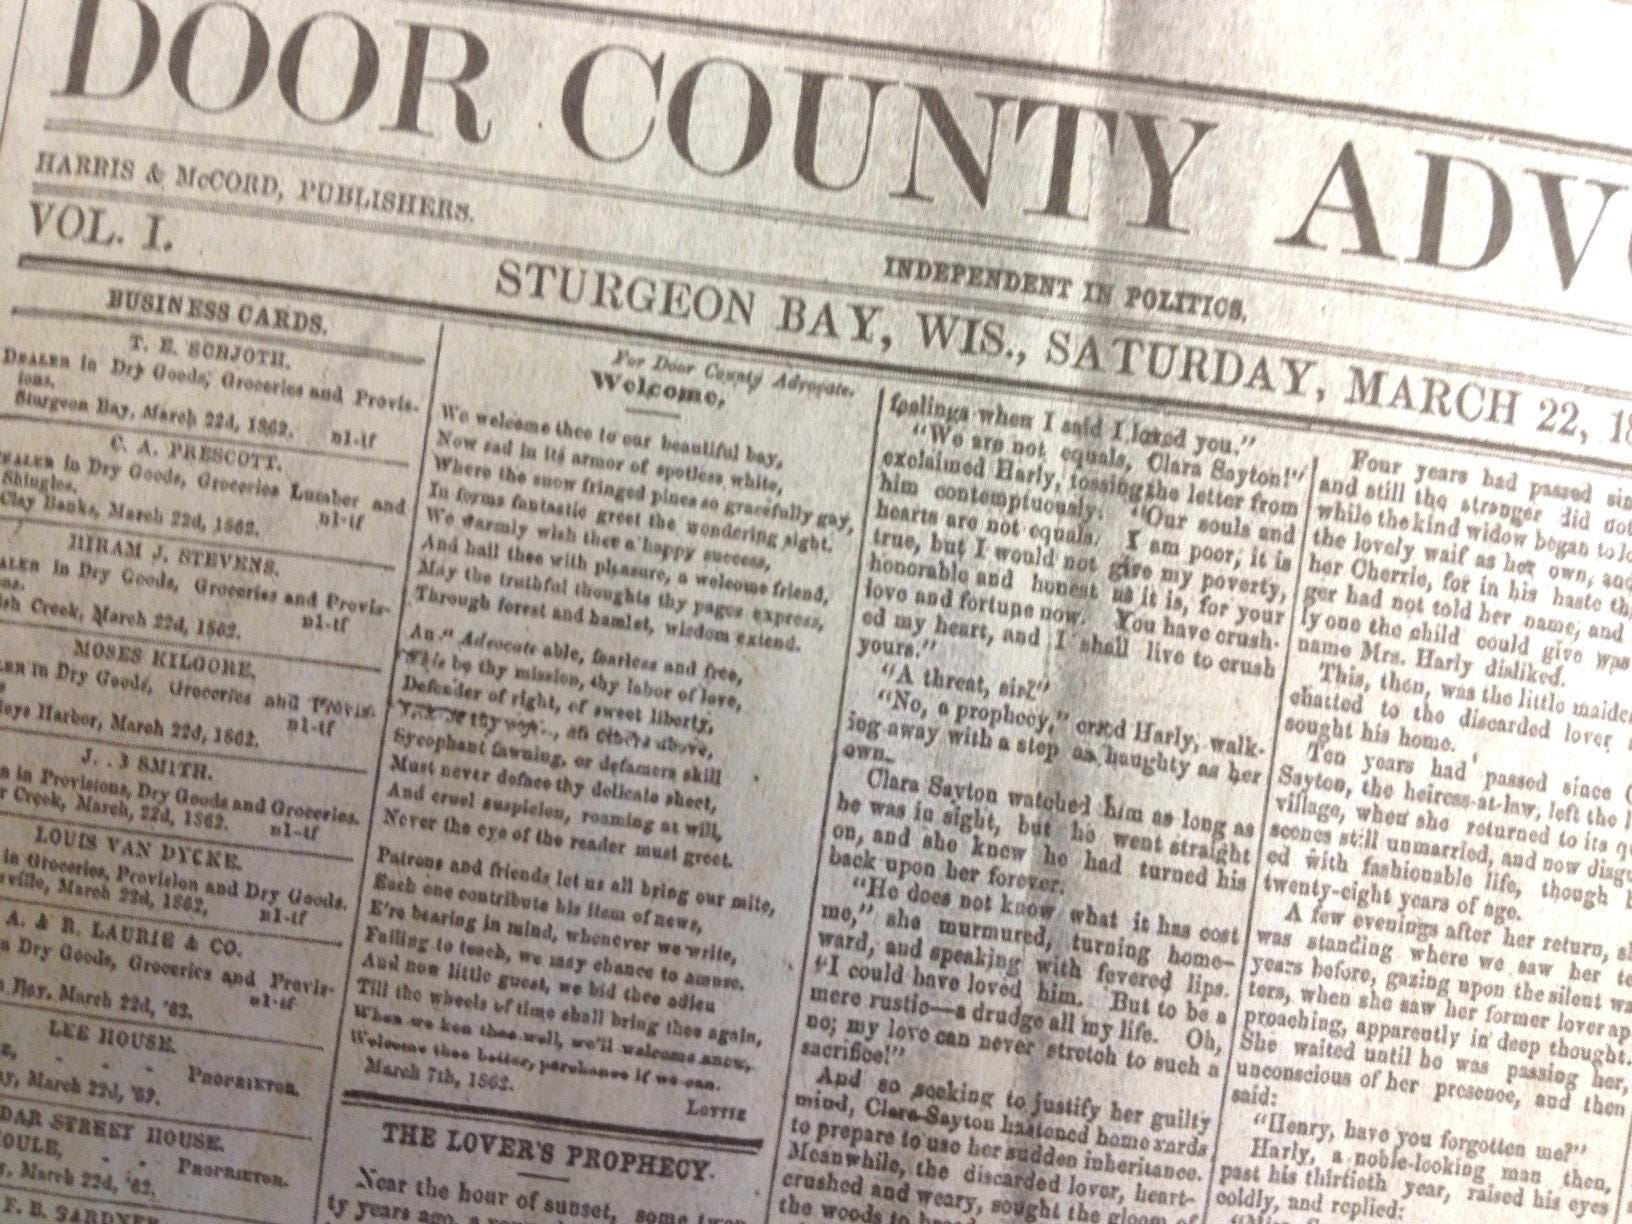 From the archives 1868 storm burst 40 barrels of beer $400 lost & Door County Advocate